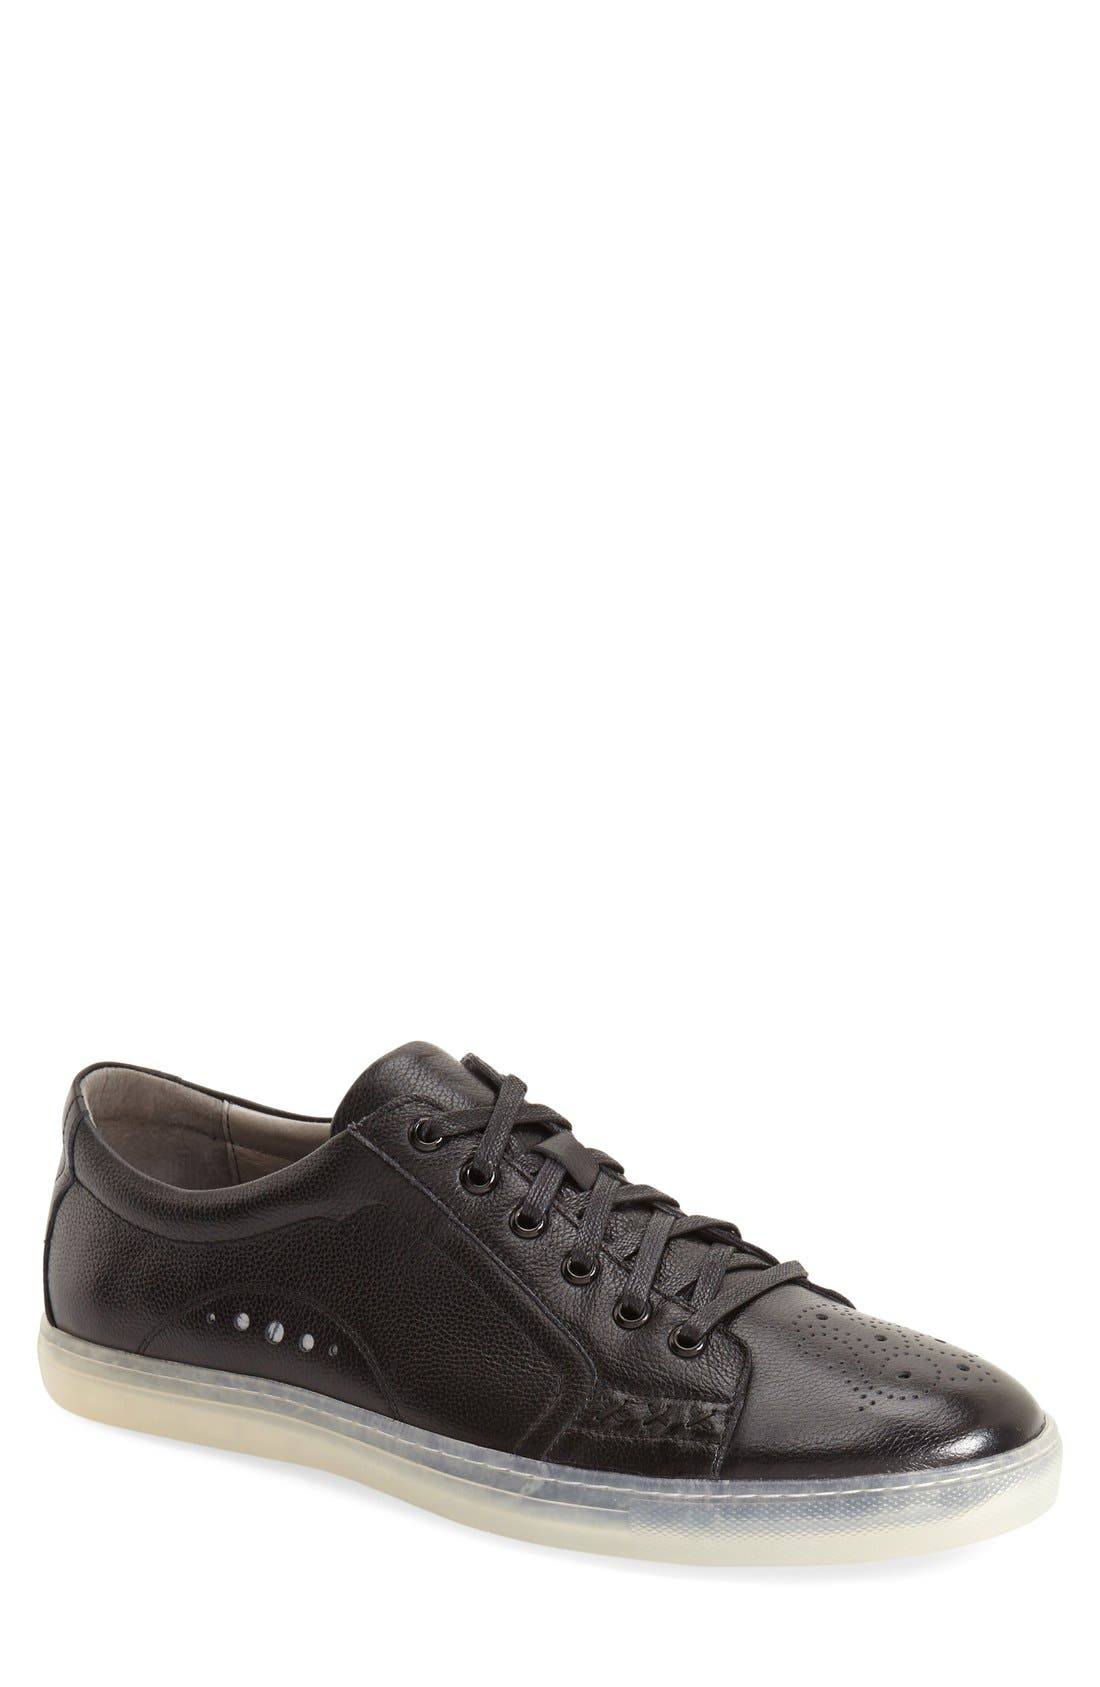 'Drum' Lace-Up Sneaker,                         Main,                         color, Black Leather